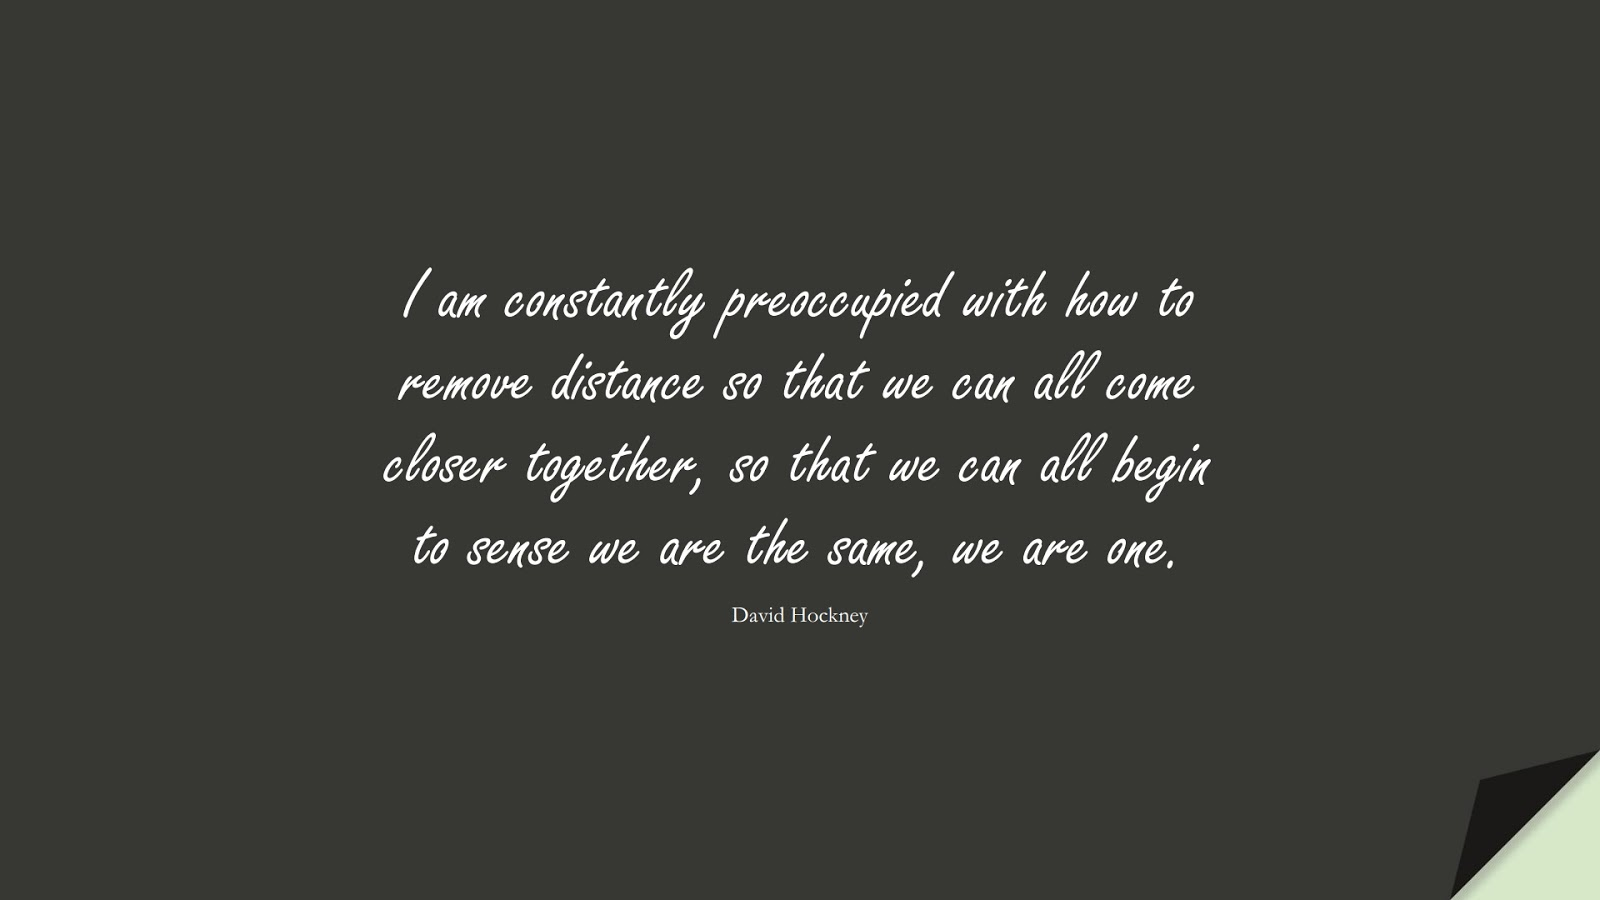 I am constantly preoccupied with how to remove distance so that we can all come closer together, so that we can all begin to sense we are the same, we are one. (David Hockney);  #HumanityQuotes